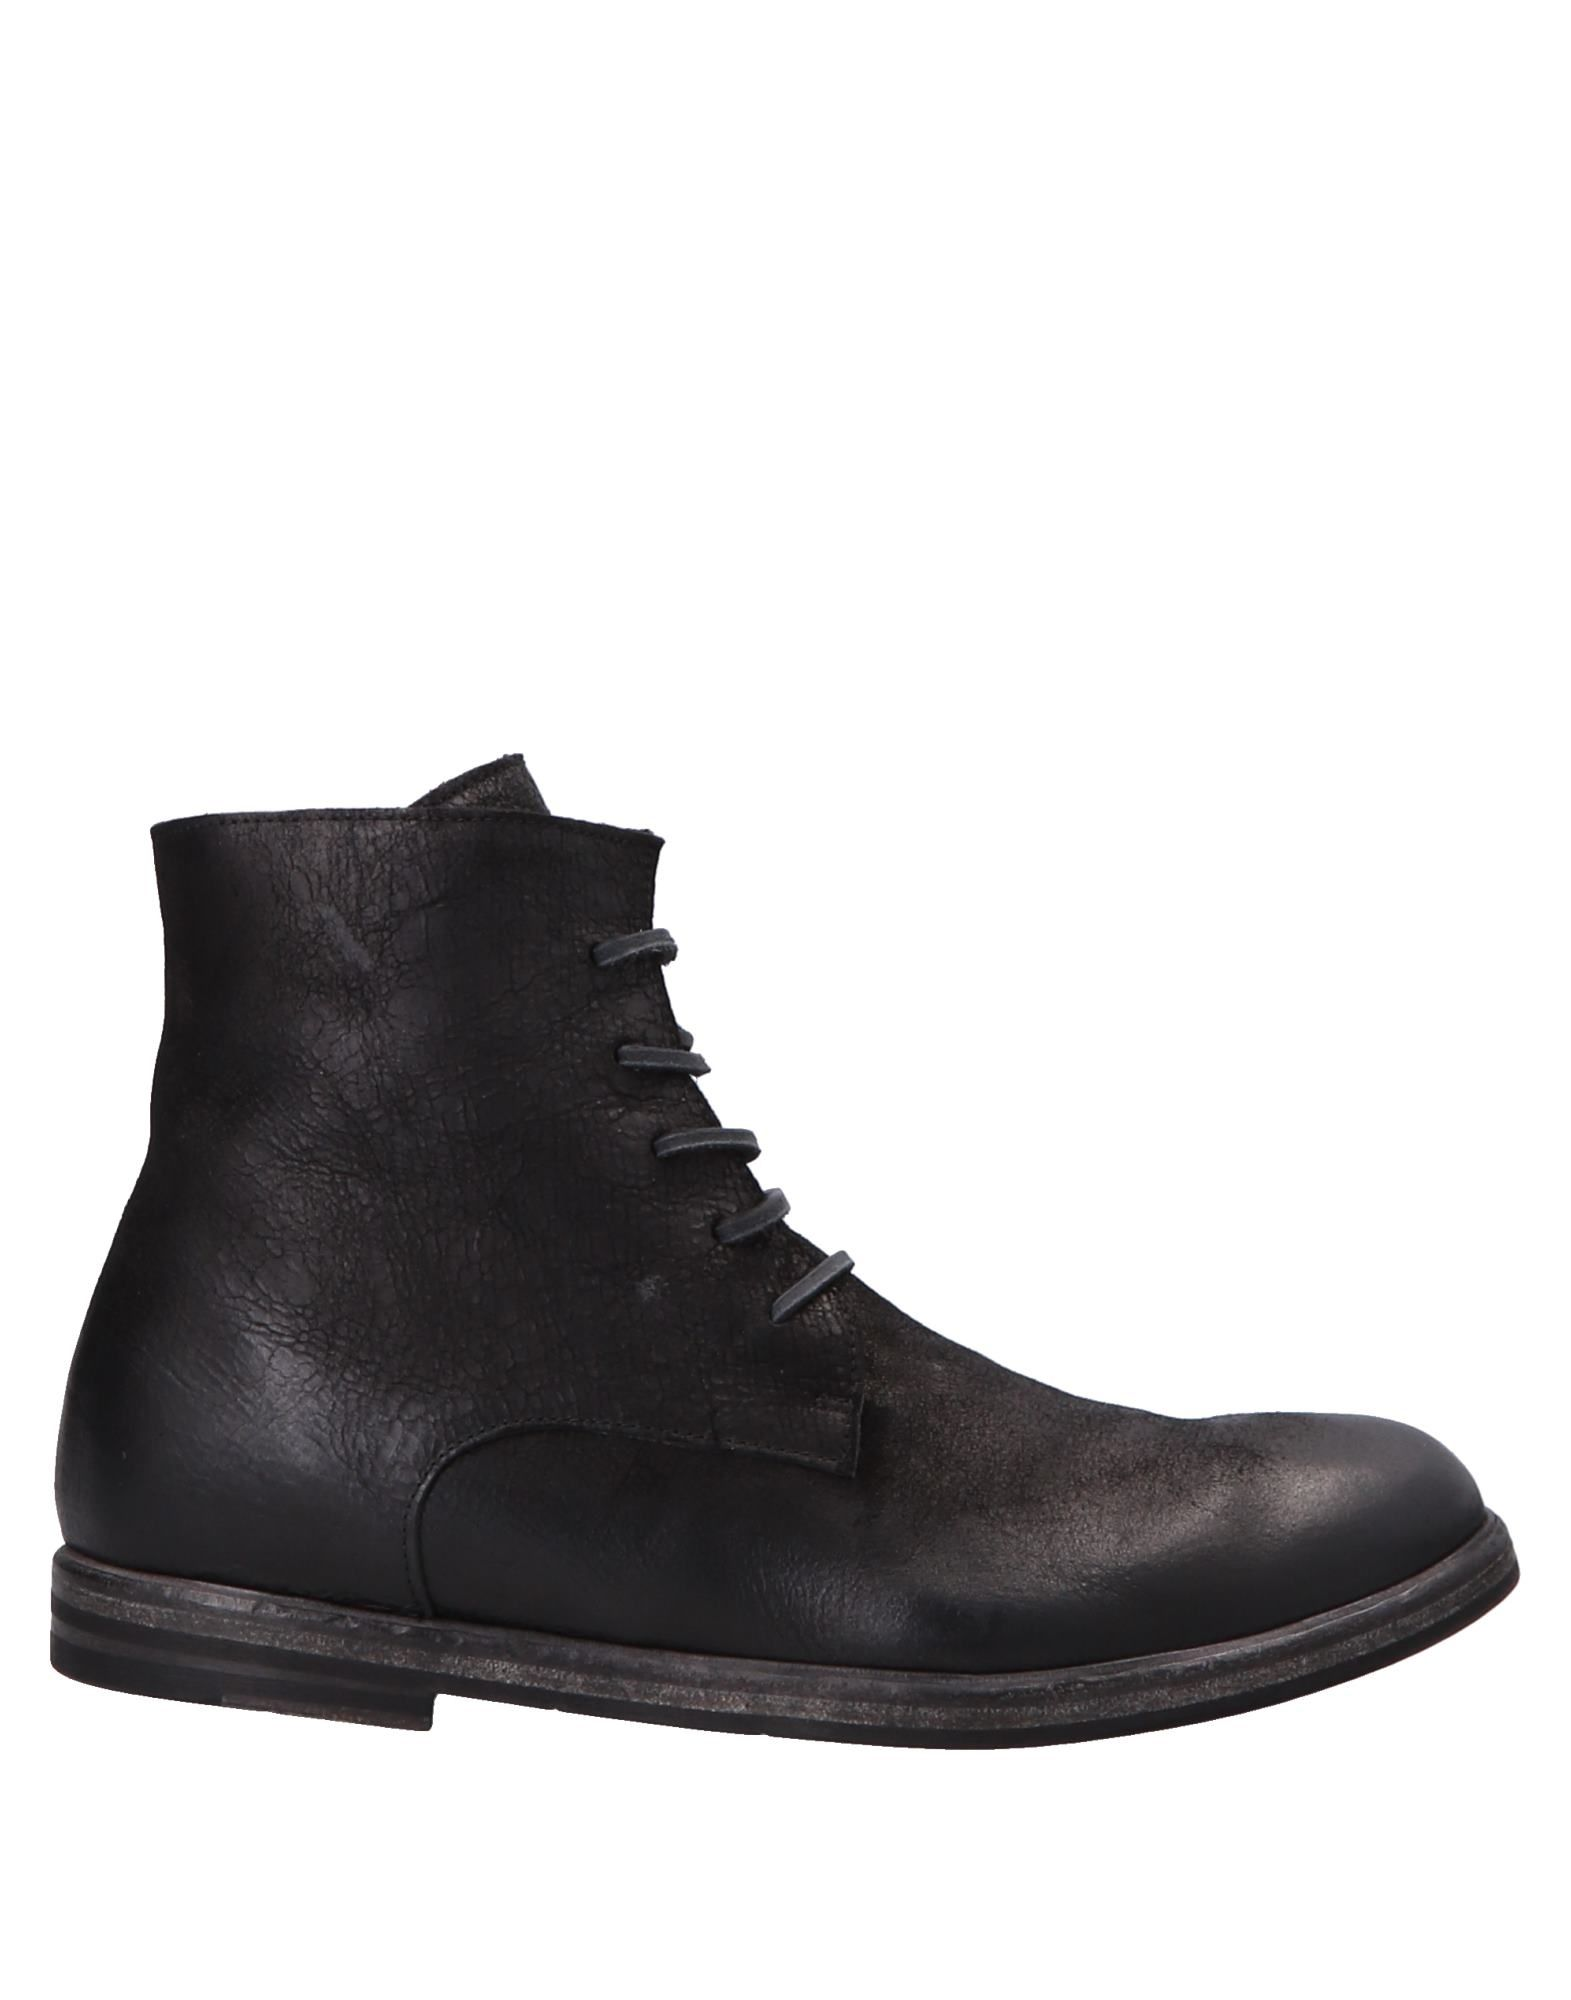 Rundholz Ankle Boot - Women Rundholz Ankle Boots online  on  online Canada - 11545612RN 5a1f2d